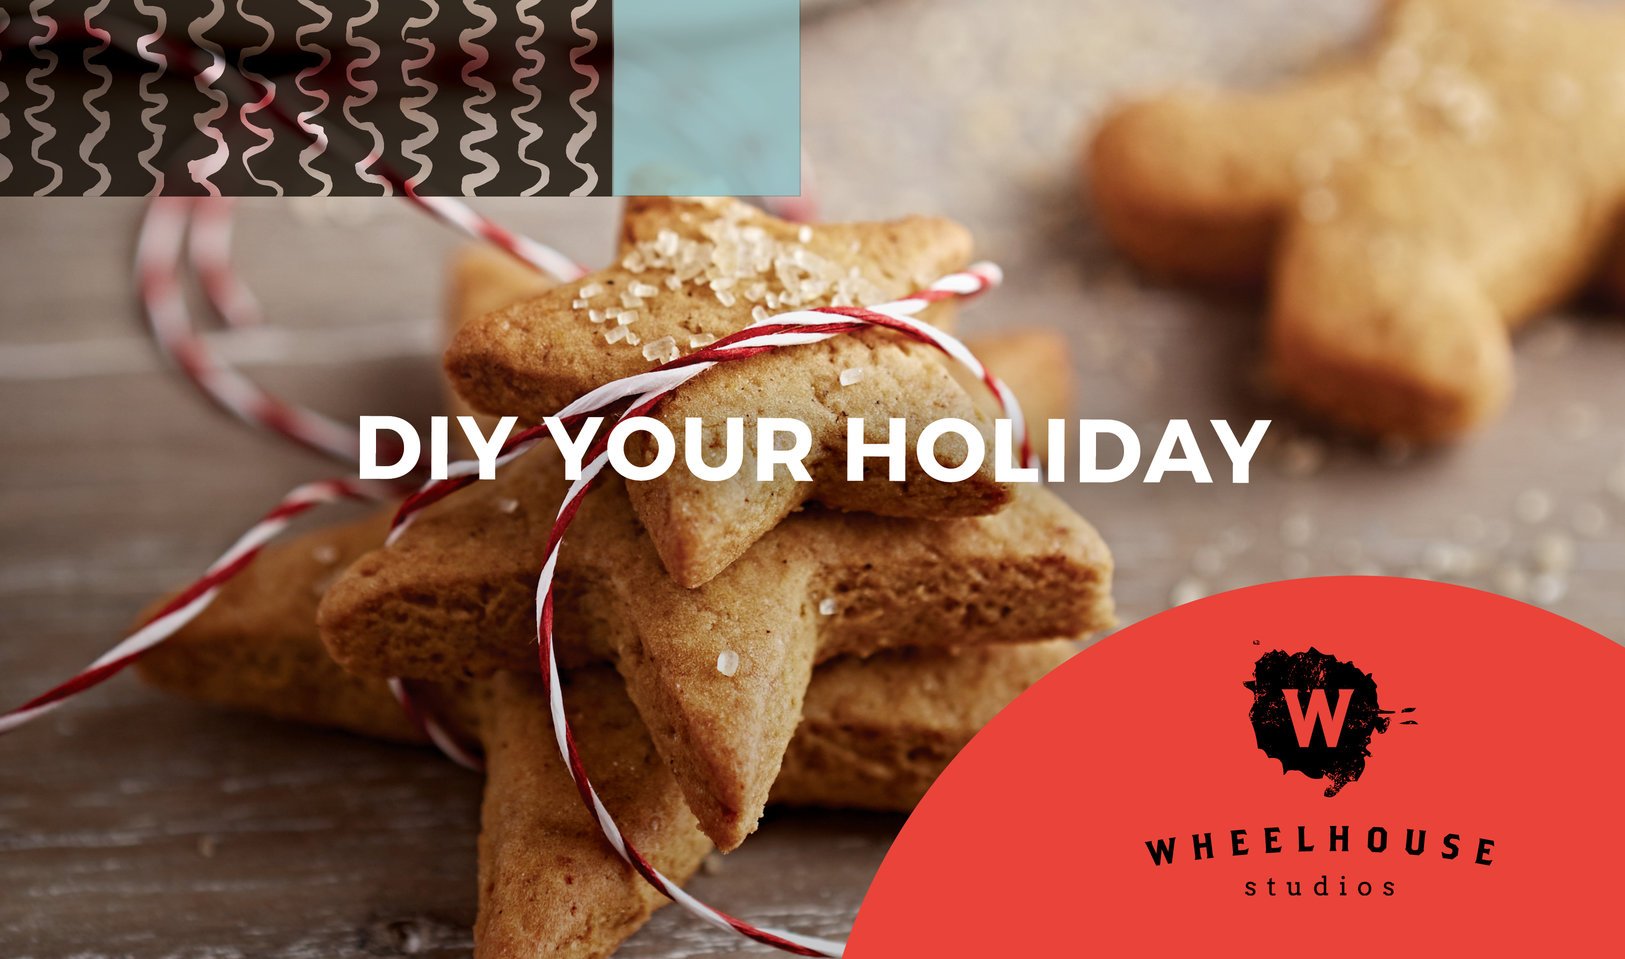 Wheelhouse Holiday DIY